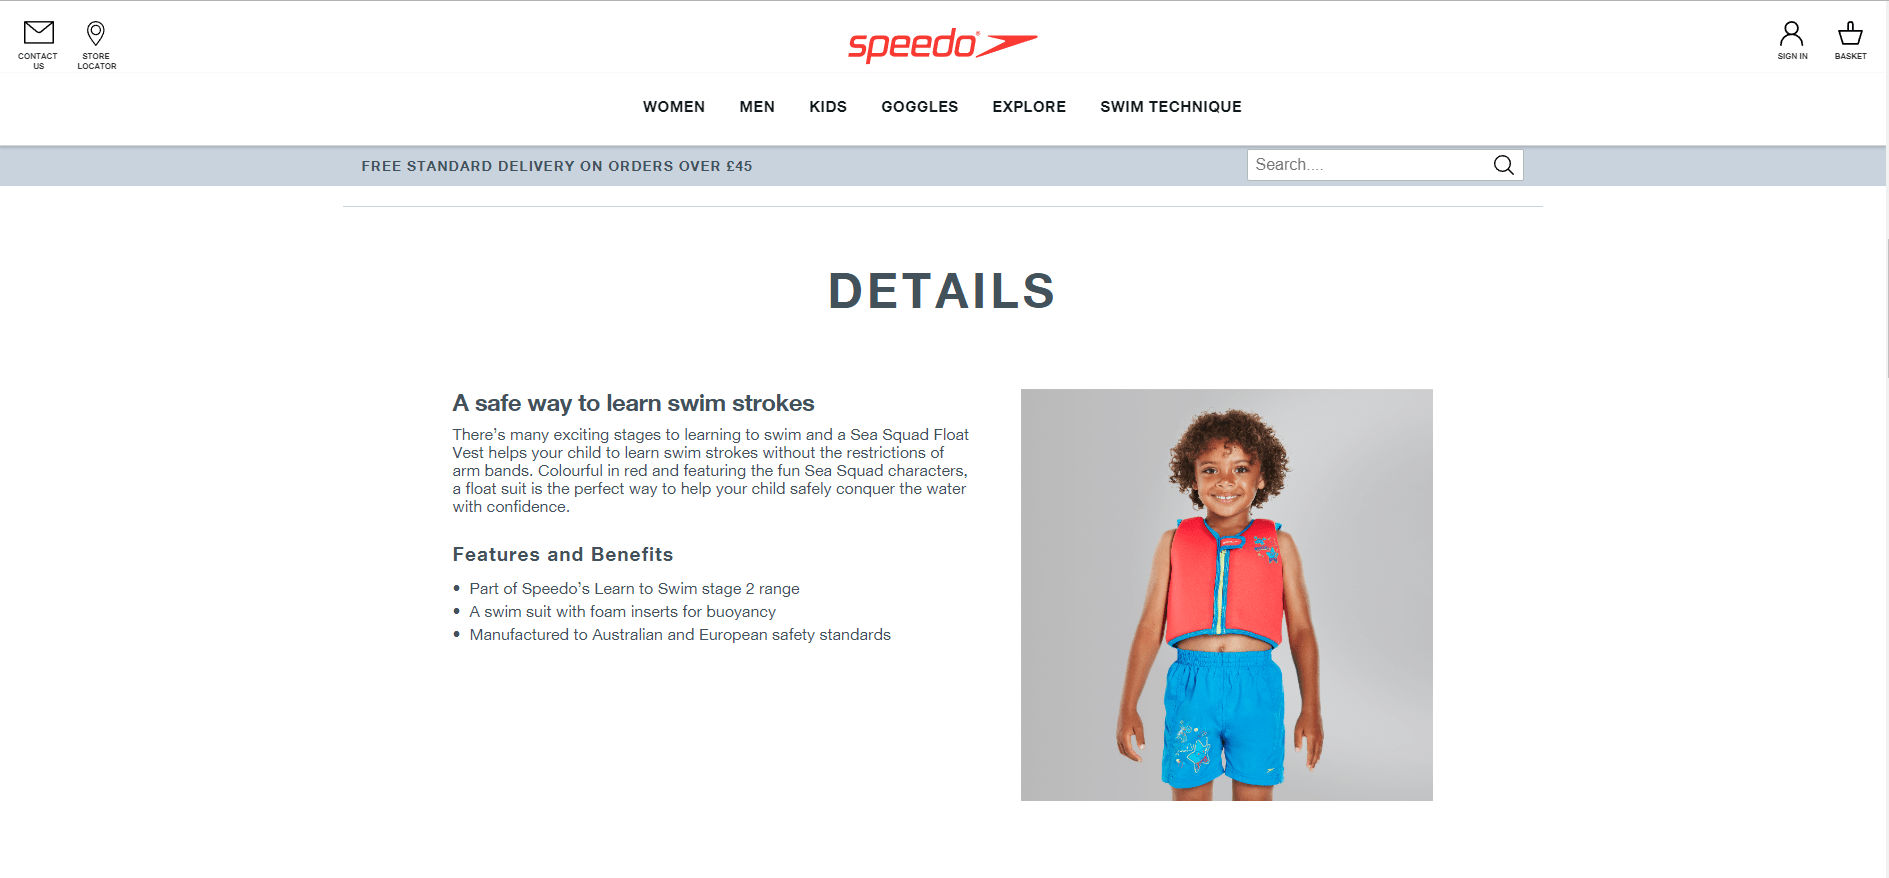 Product descriptions for Speedos